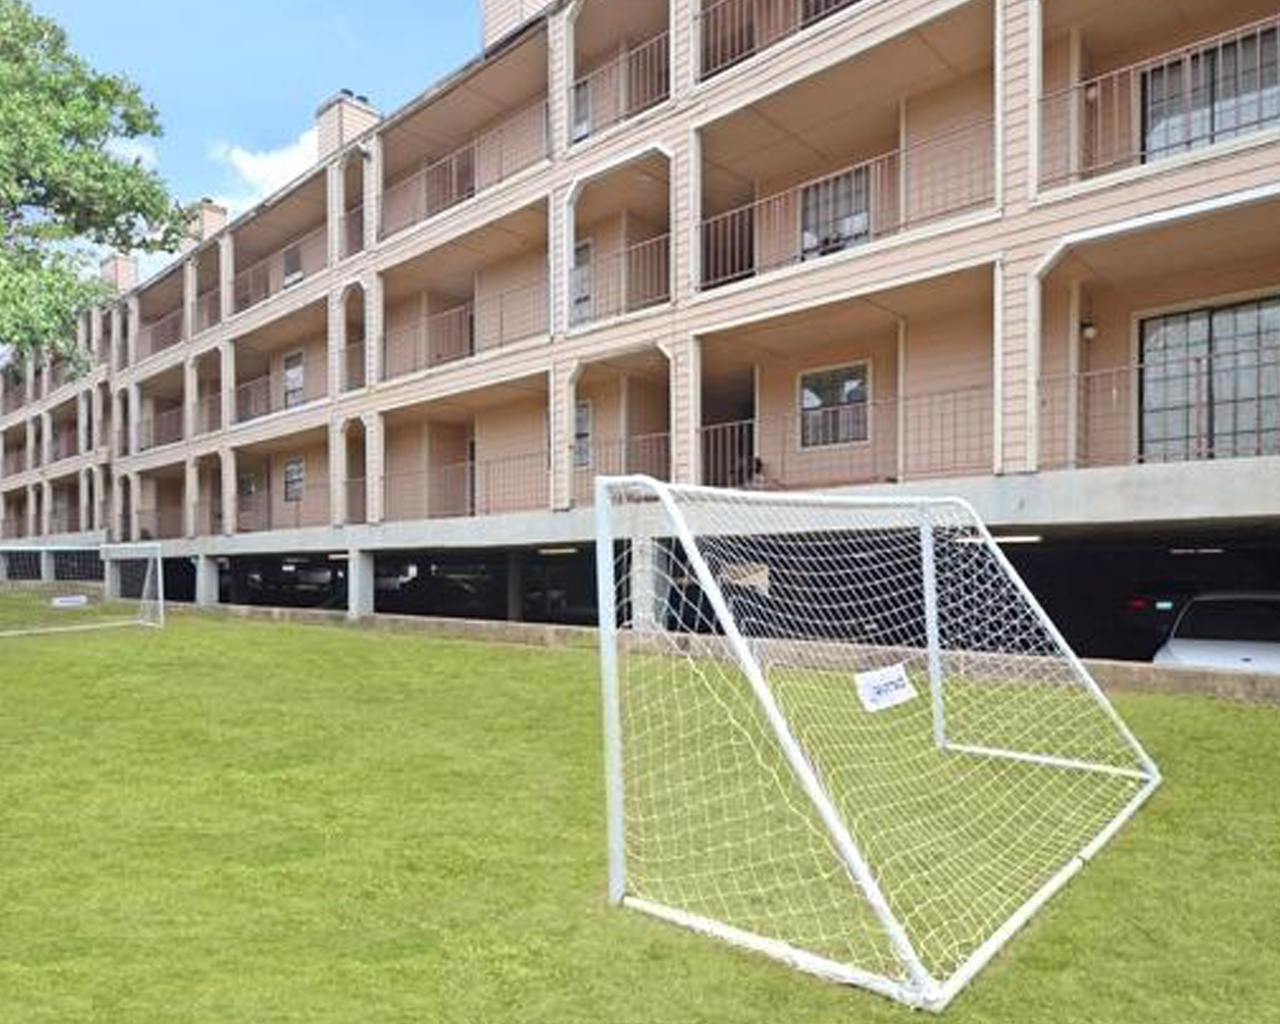 Forest Hills apartments play area and soccer field